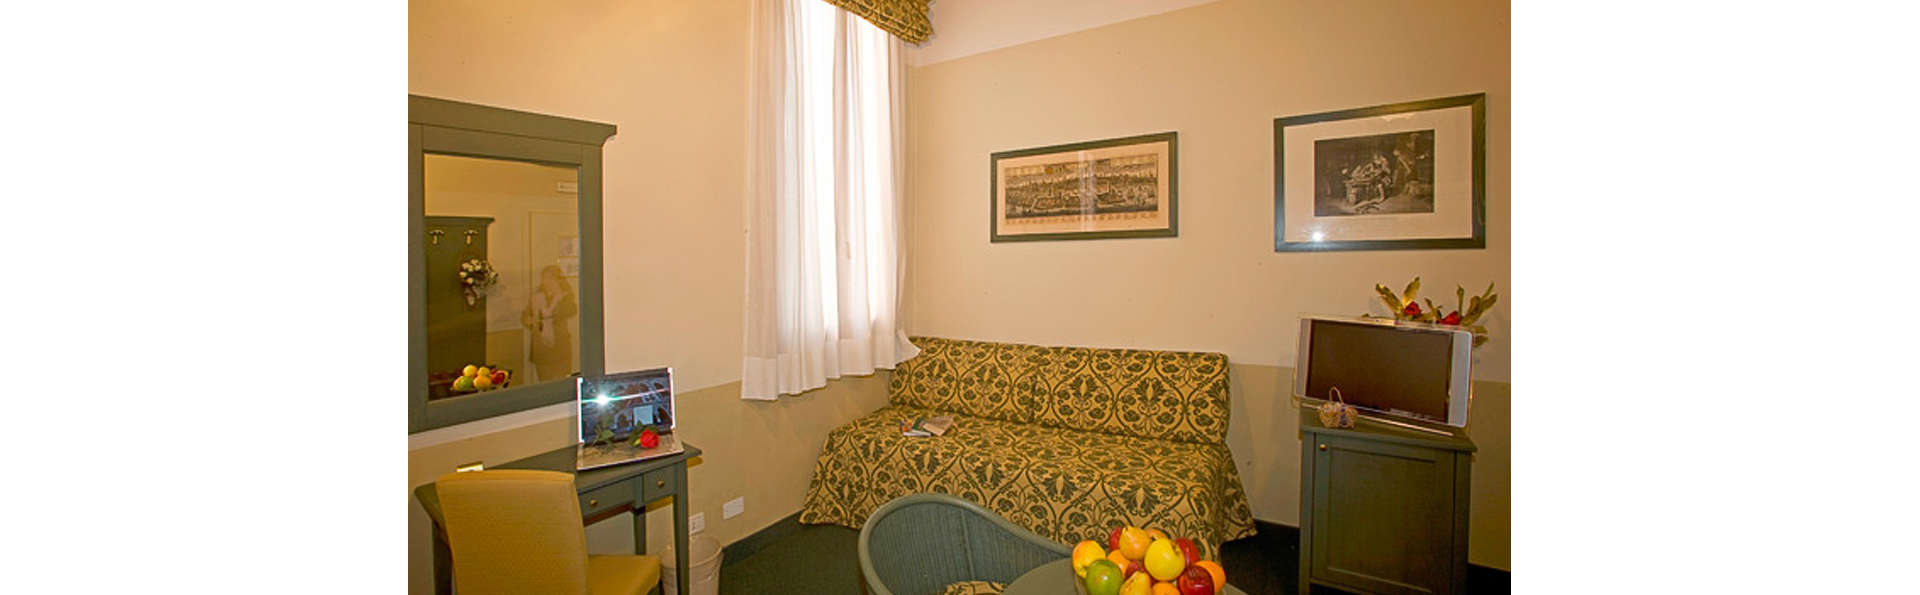 Hotel Al Sole - EDIT_ROOM_01.jpg